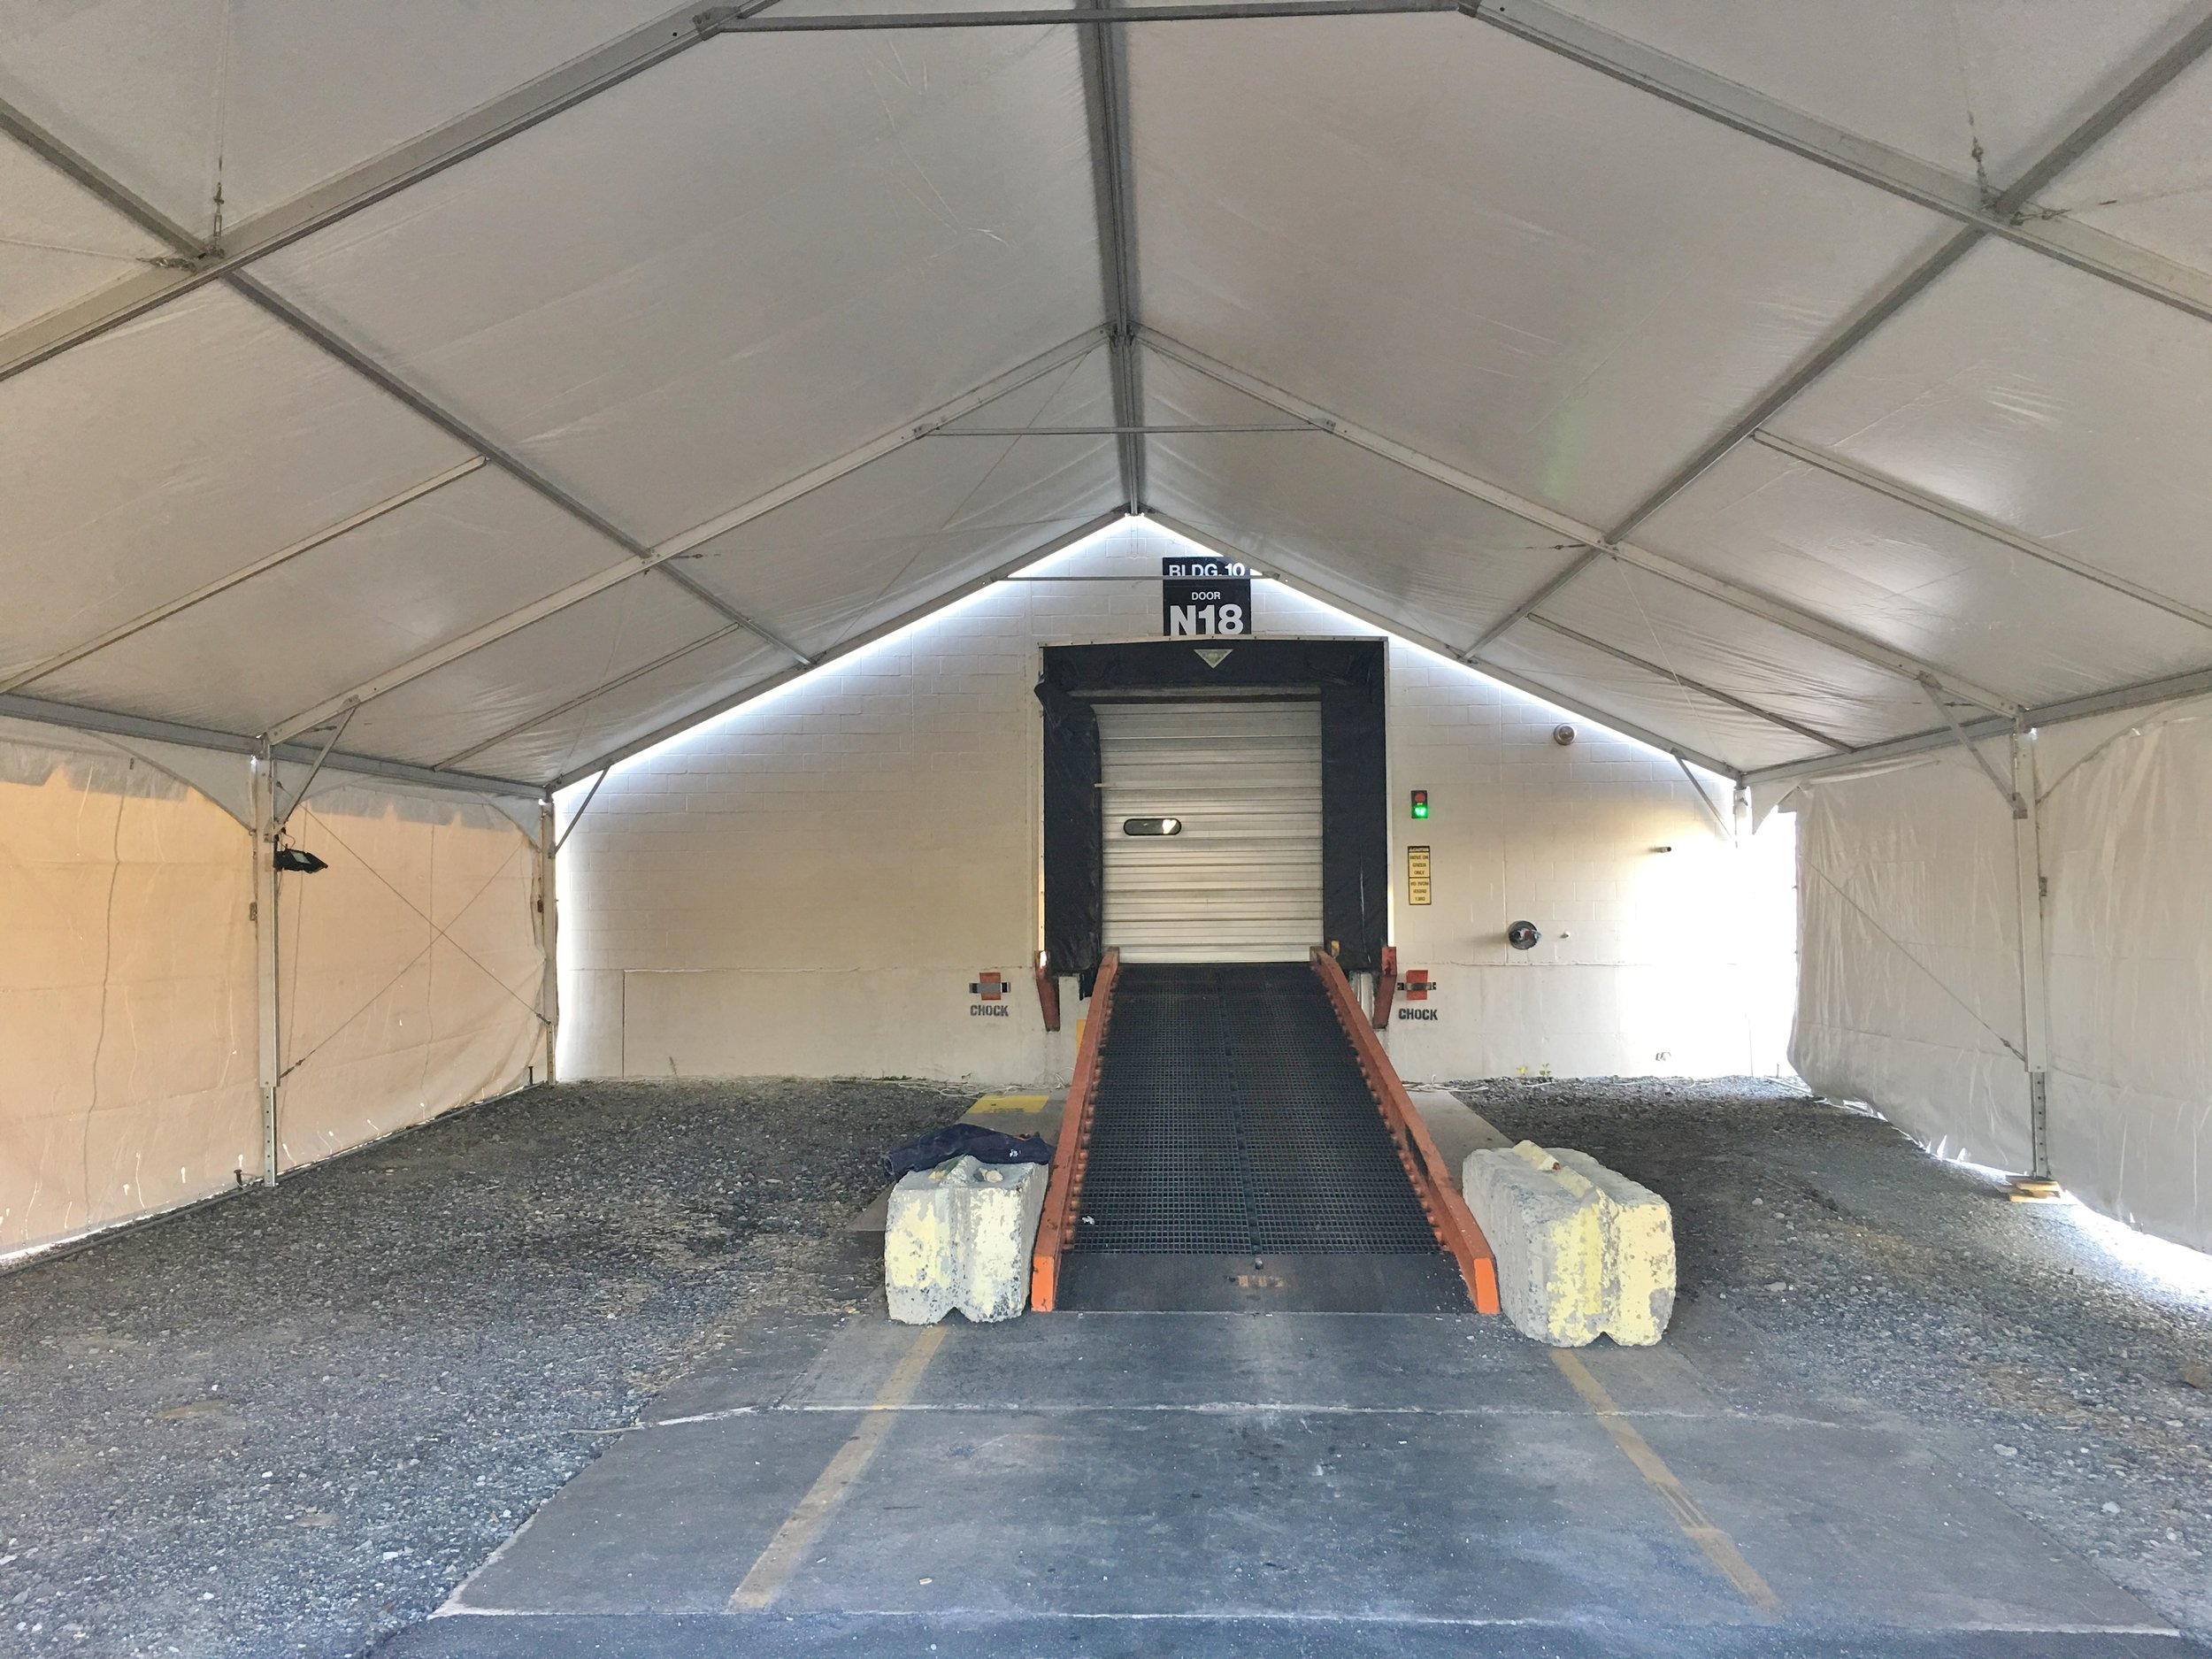 Temporary winter forklift ramp cover used during construction